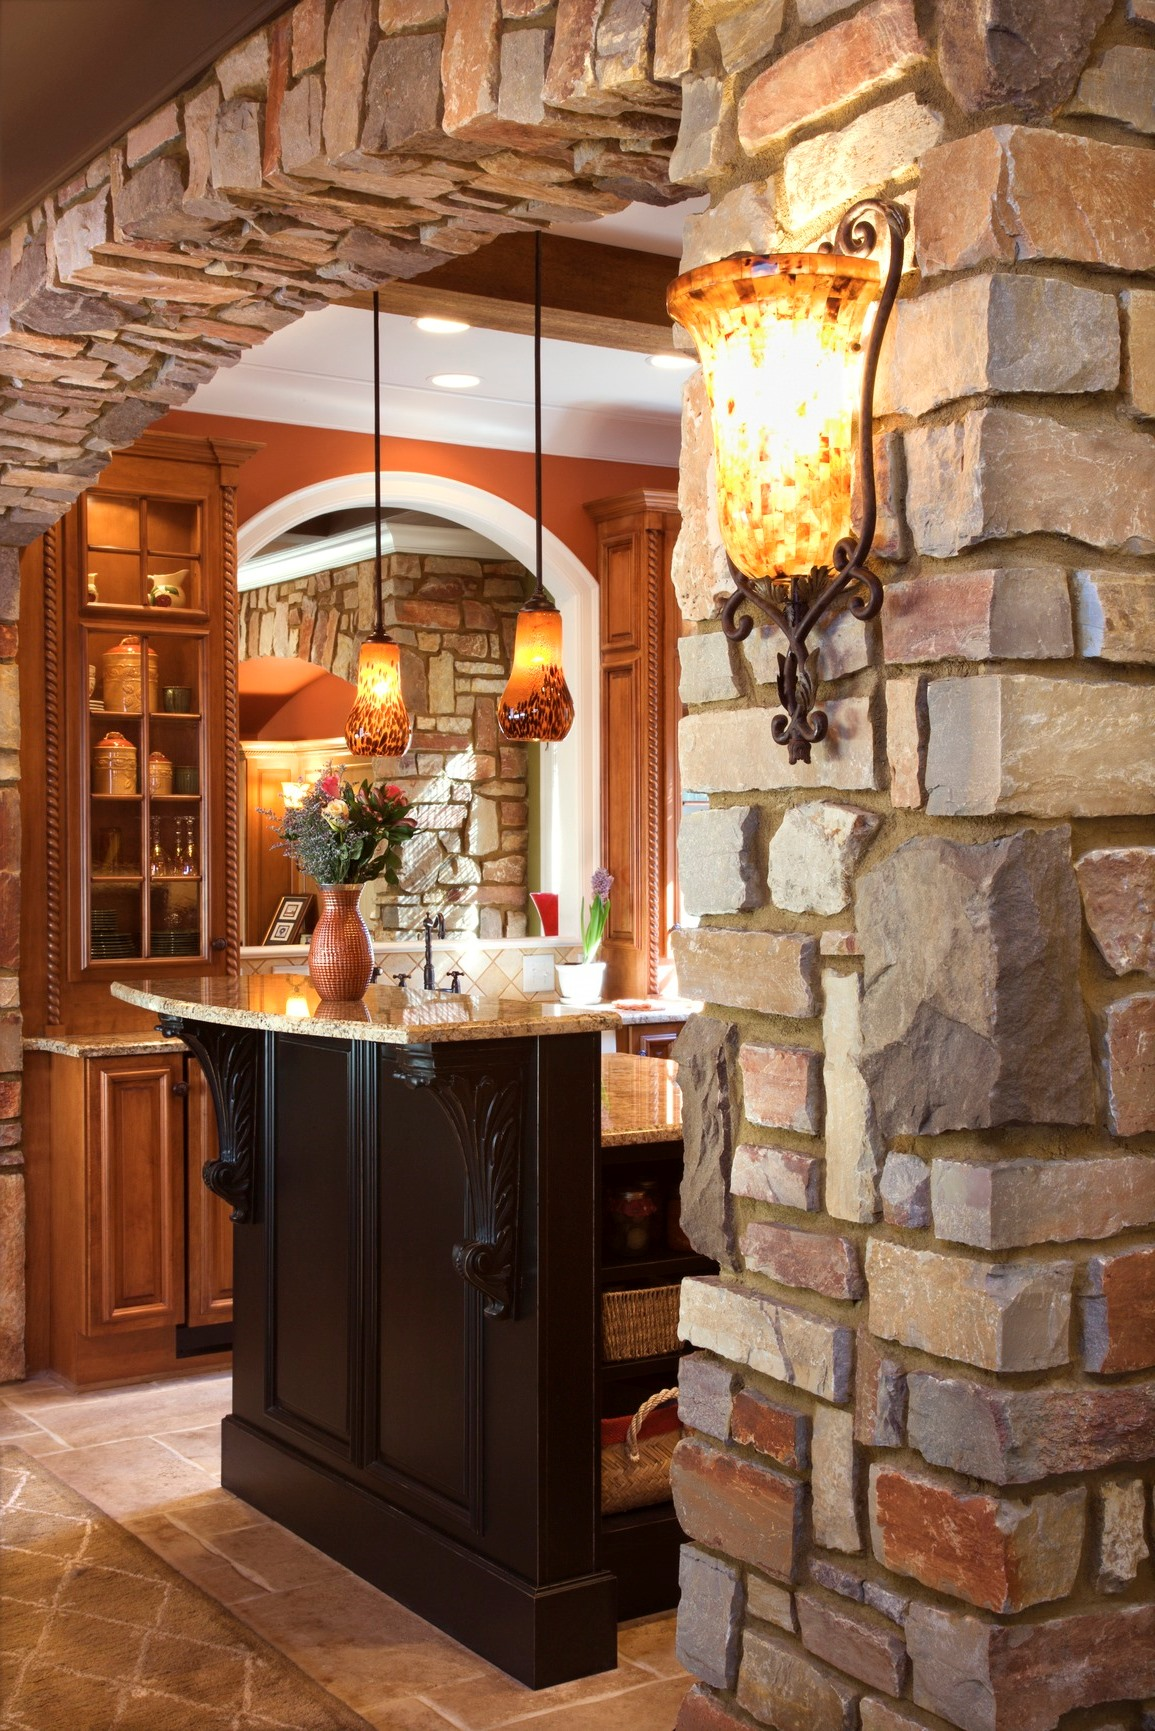 Archway Ideas Interior Arch Design For House Elegant Fascinating Home Interior